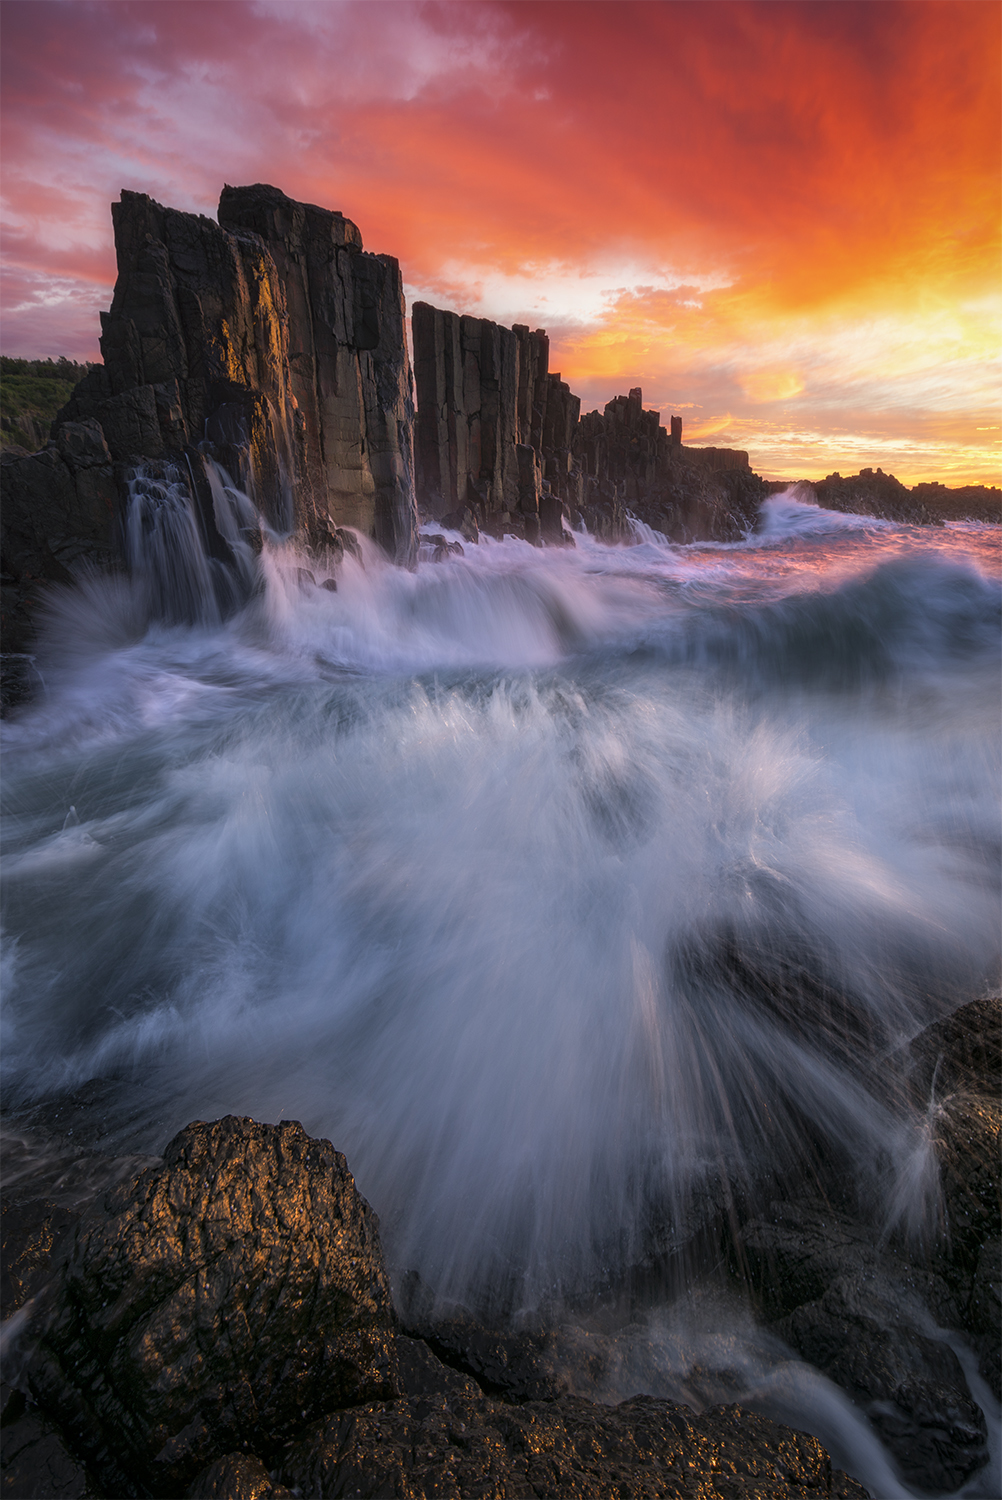 Bombo Quarry sunrise photography